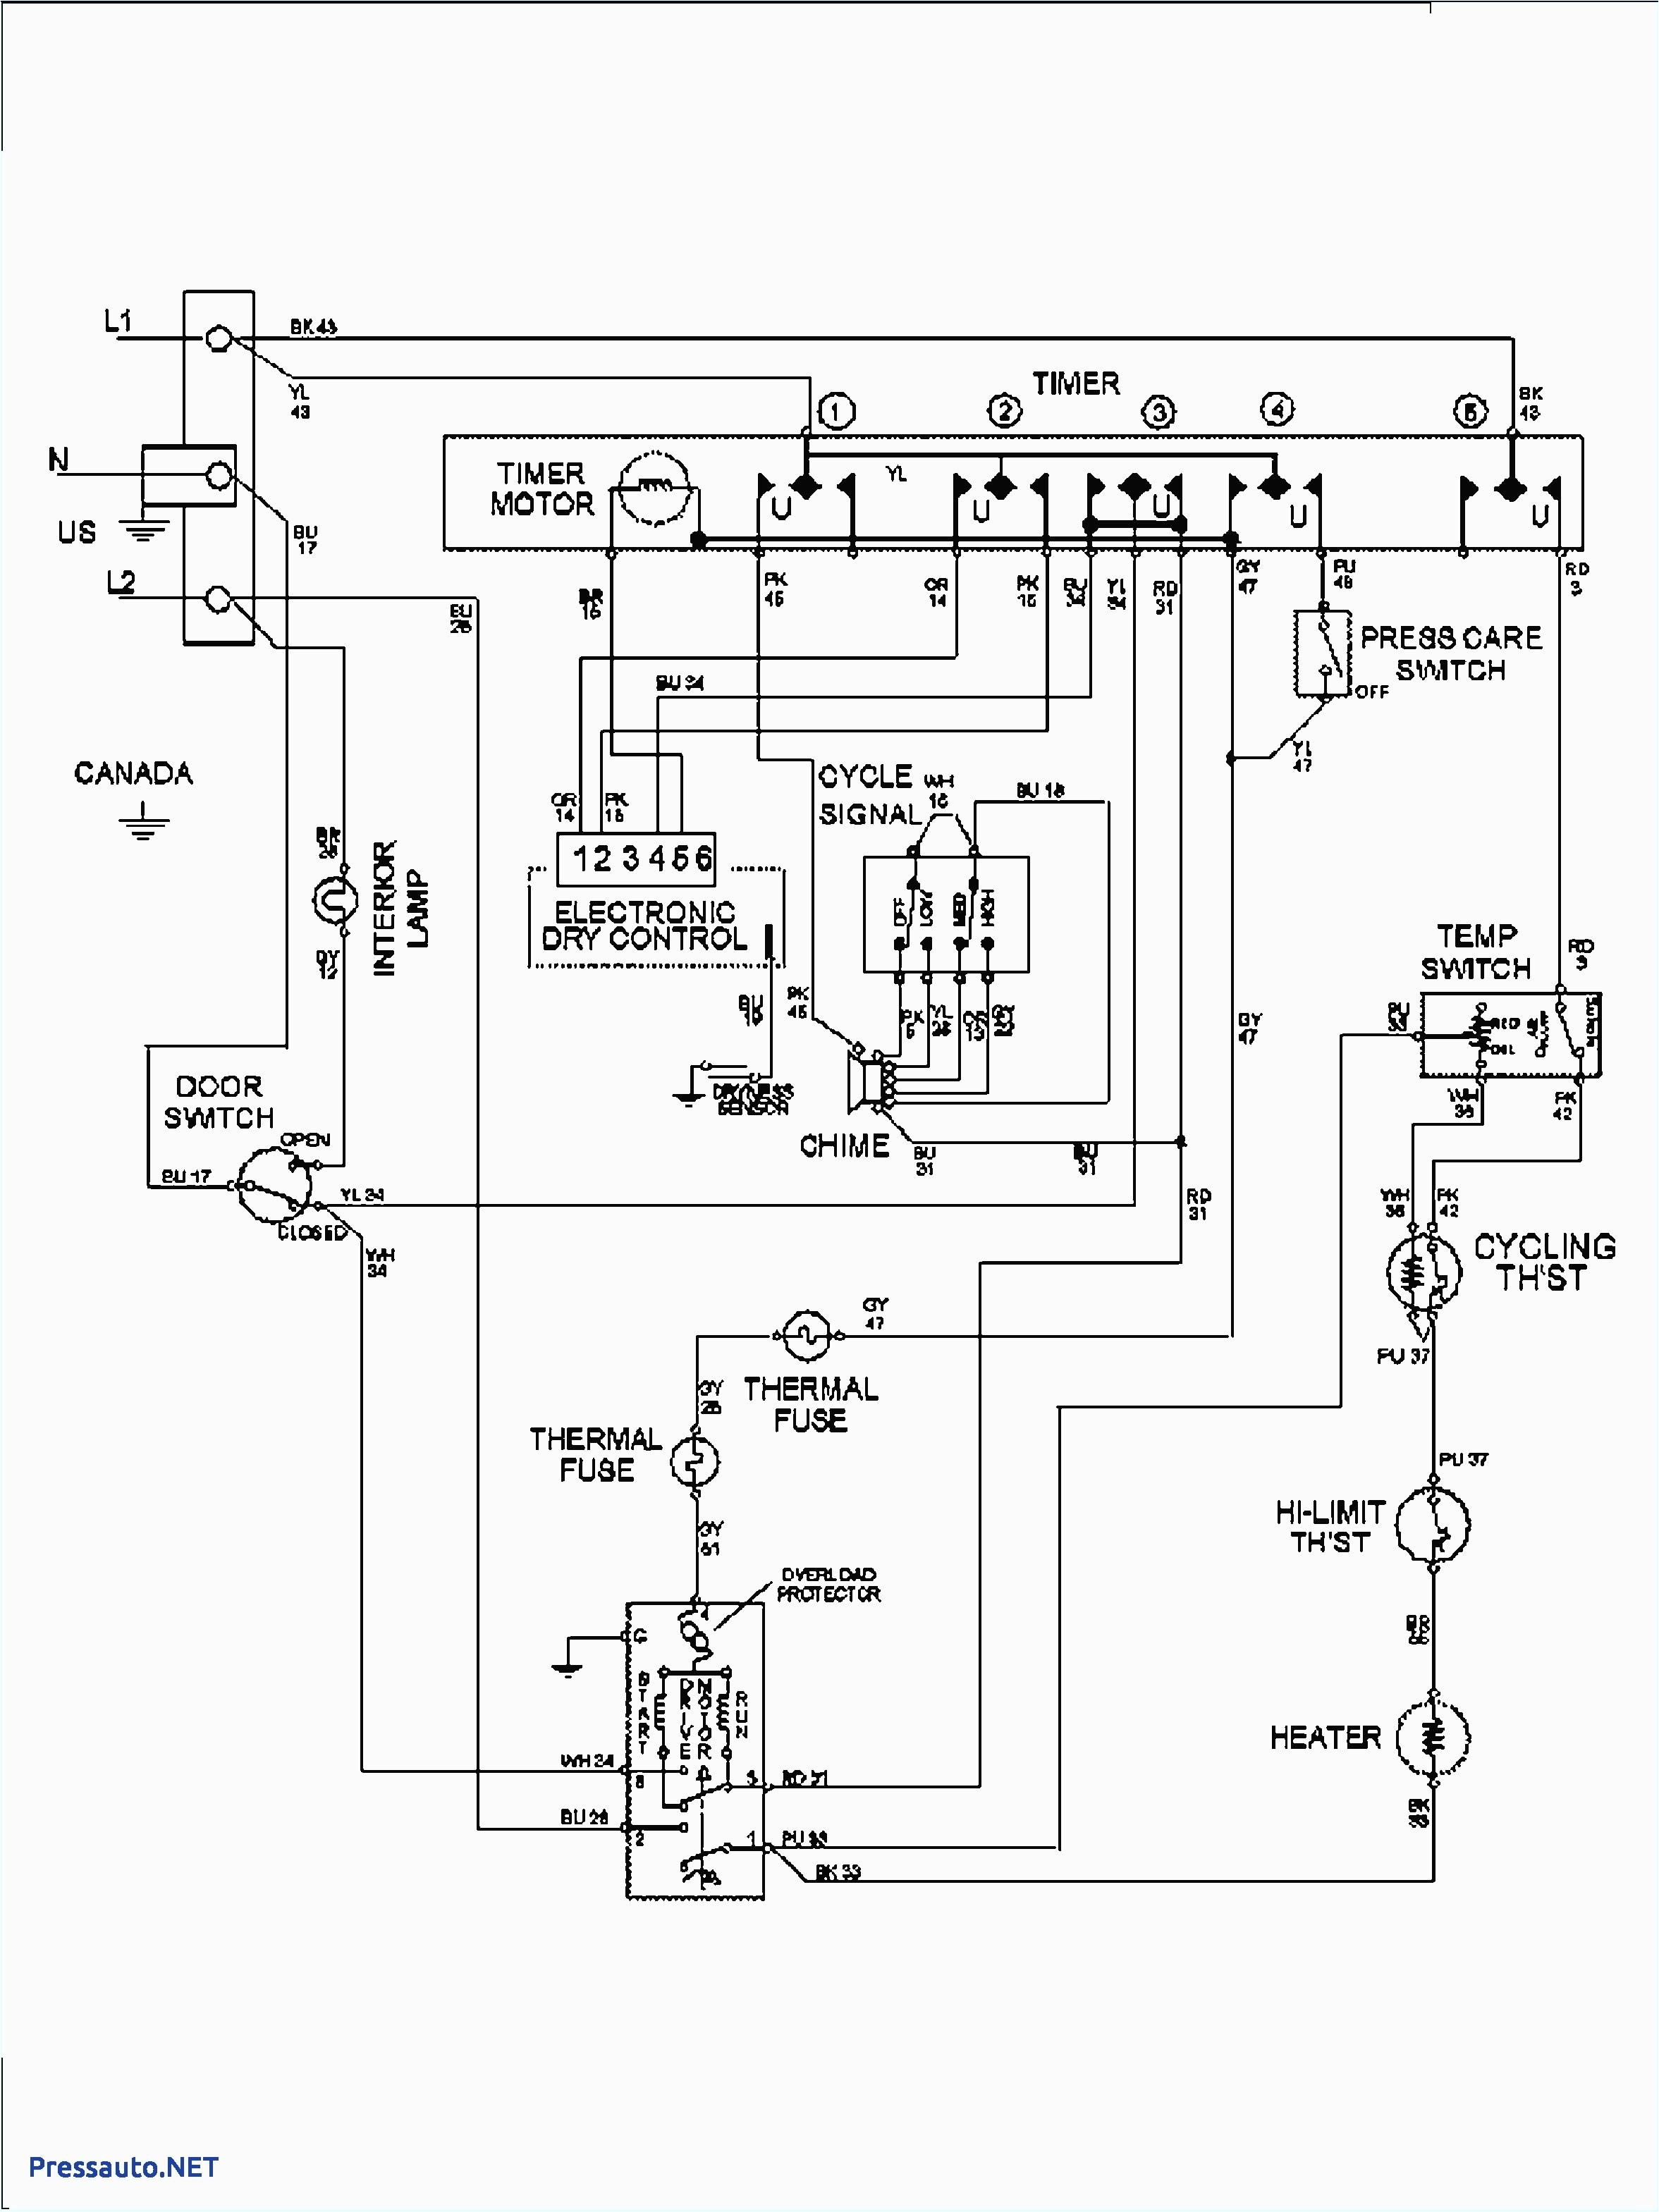 whirlpool semi automatic washing machine wiring diagram new duet front load washer wiring diagram get free